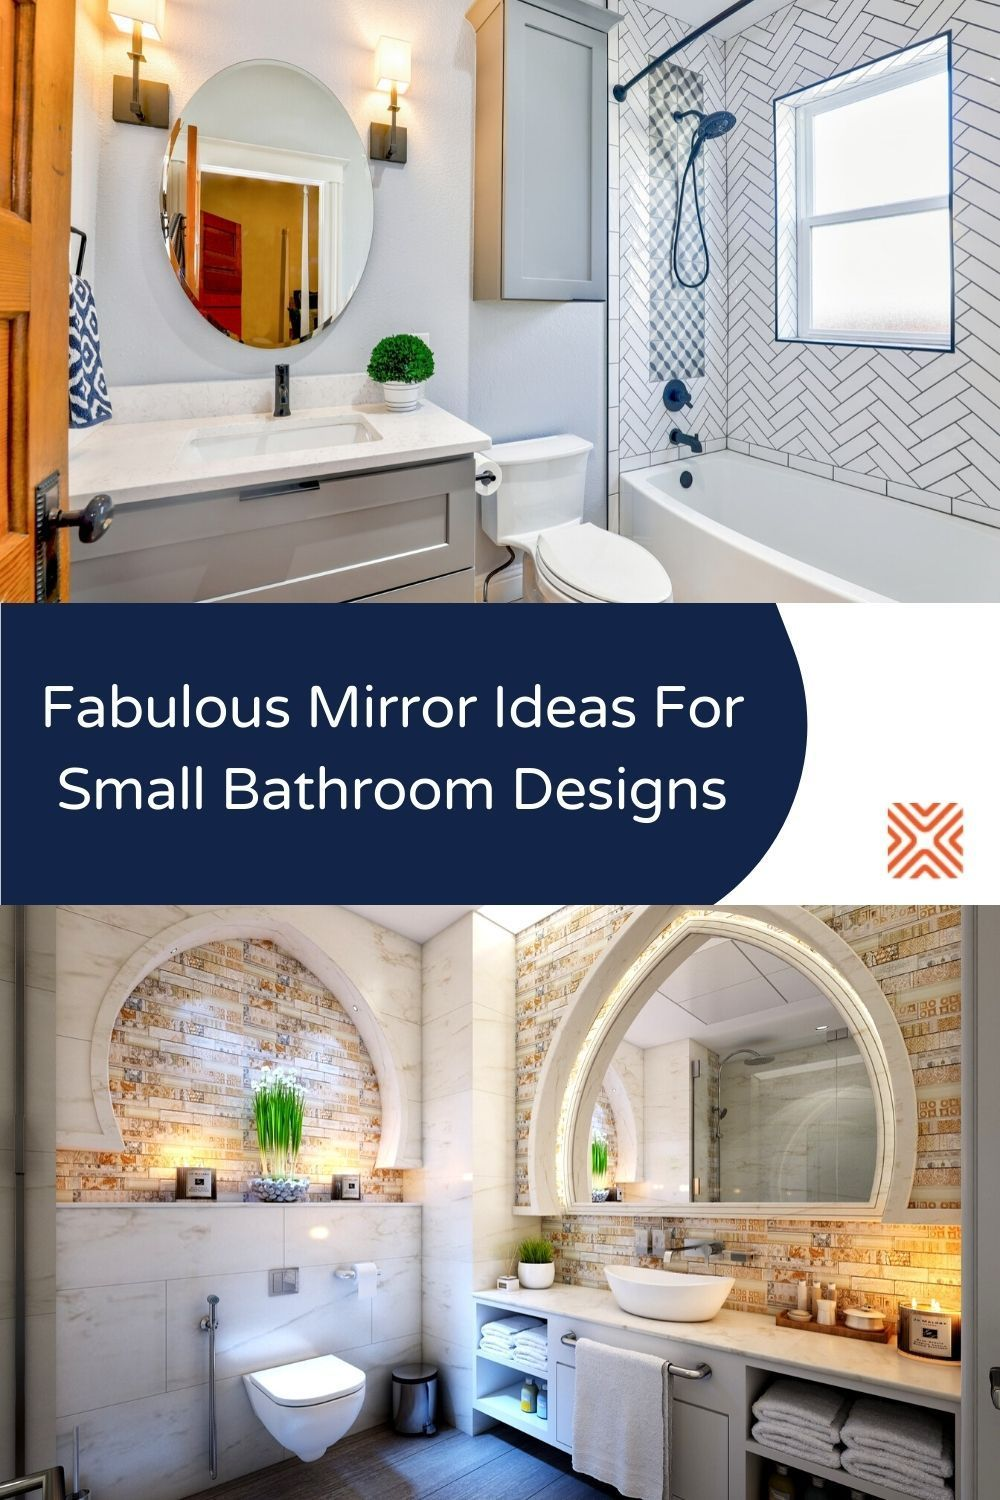 Clever Bathroom Mirror Ideas For A Small Design Layout